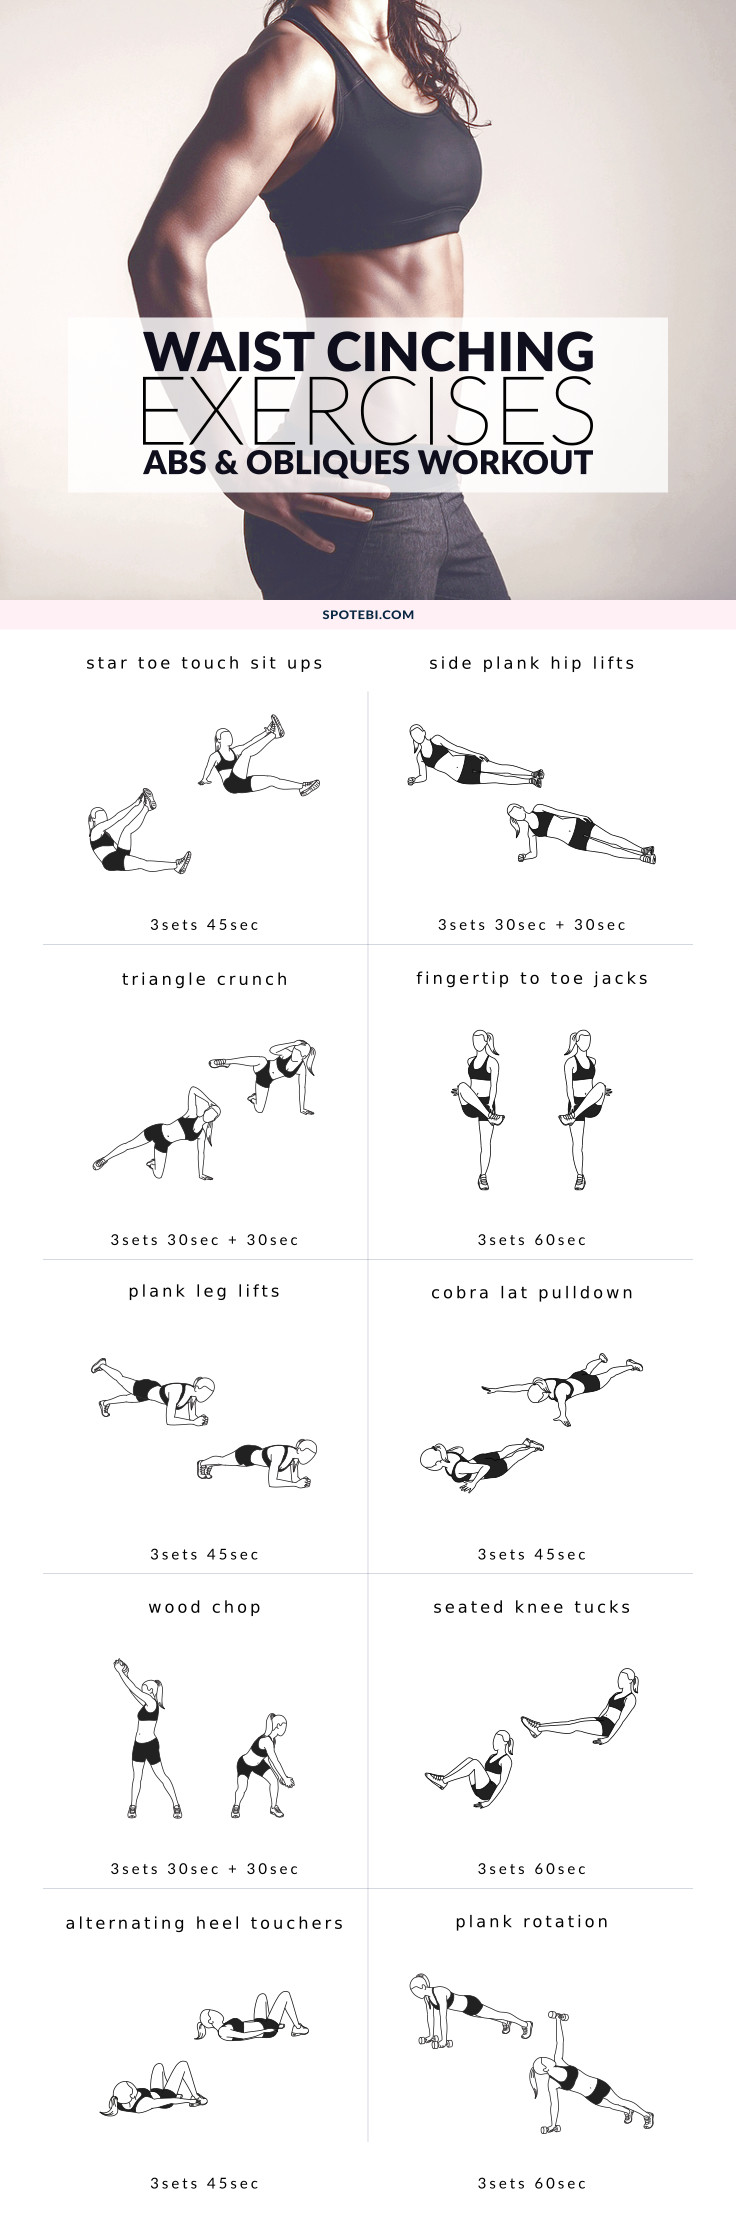 Work Your Abs And Obliques With These Core Exercises For Women A 30 Minute